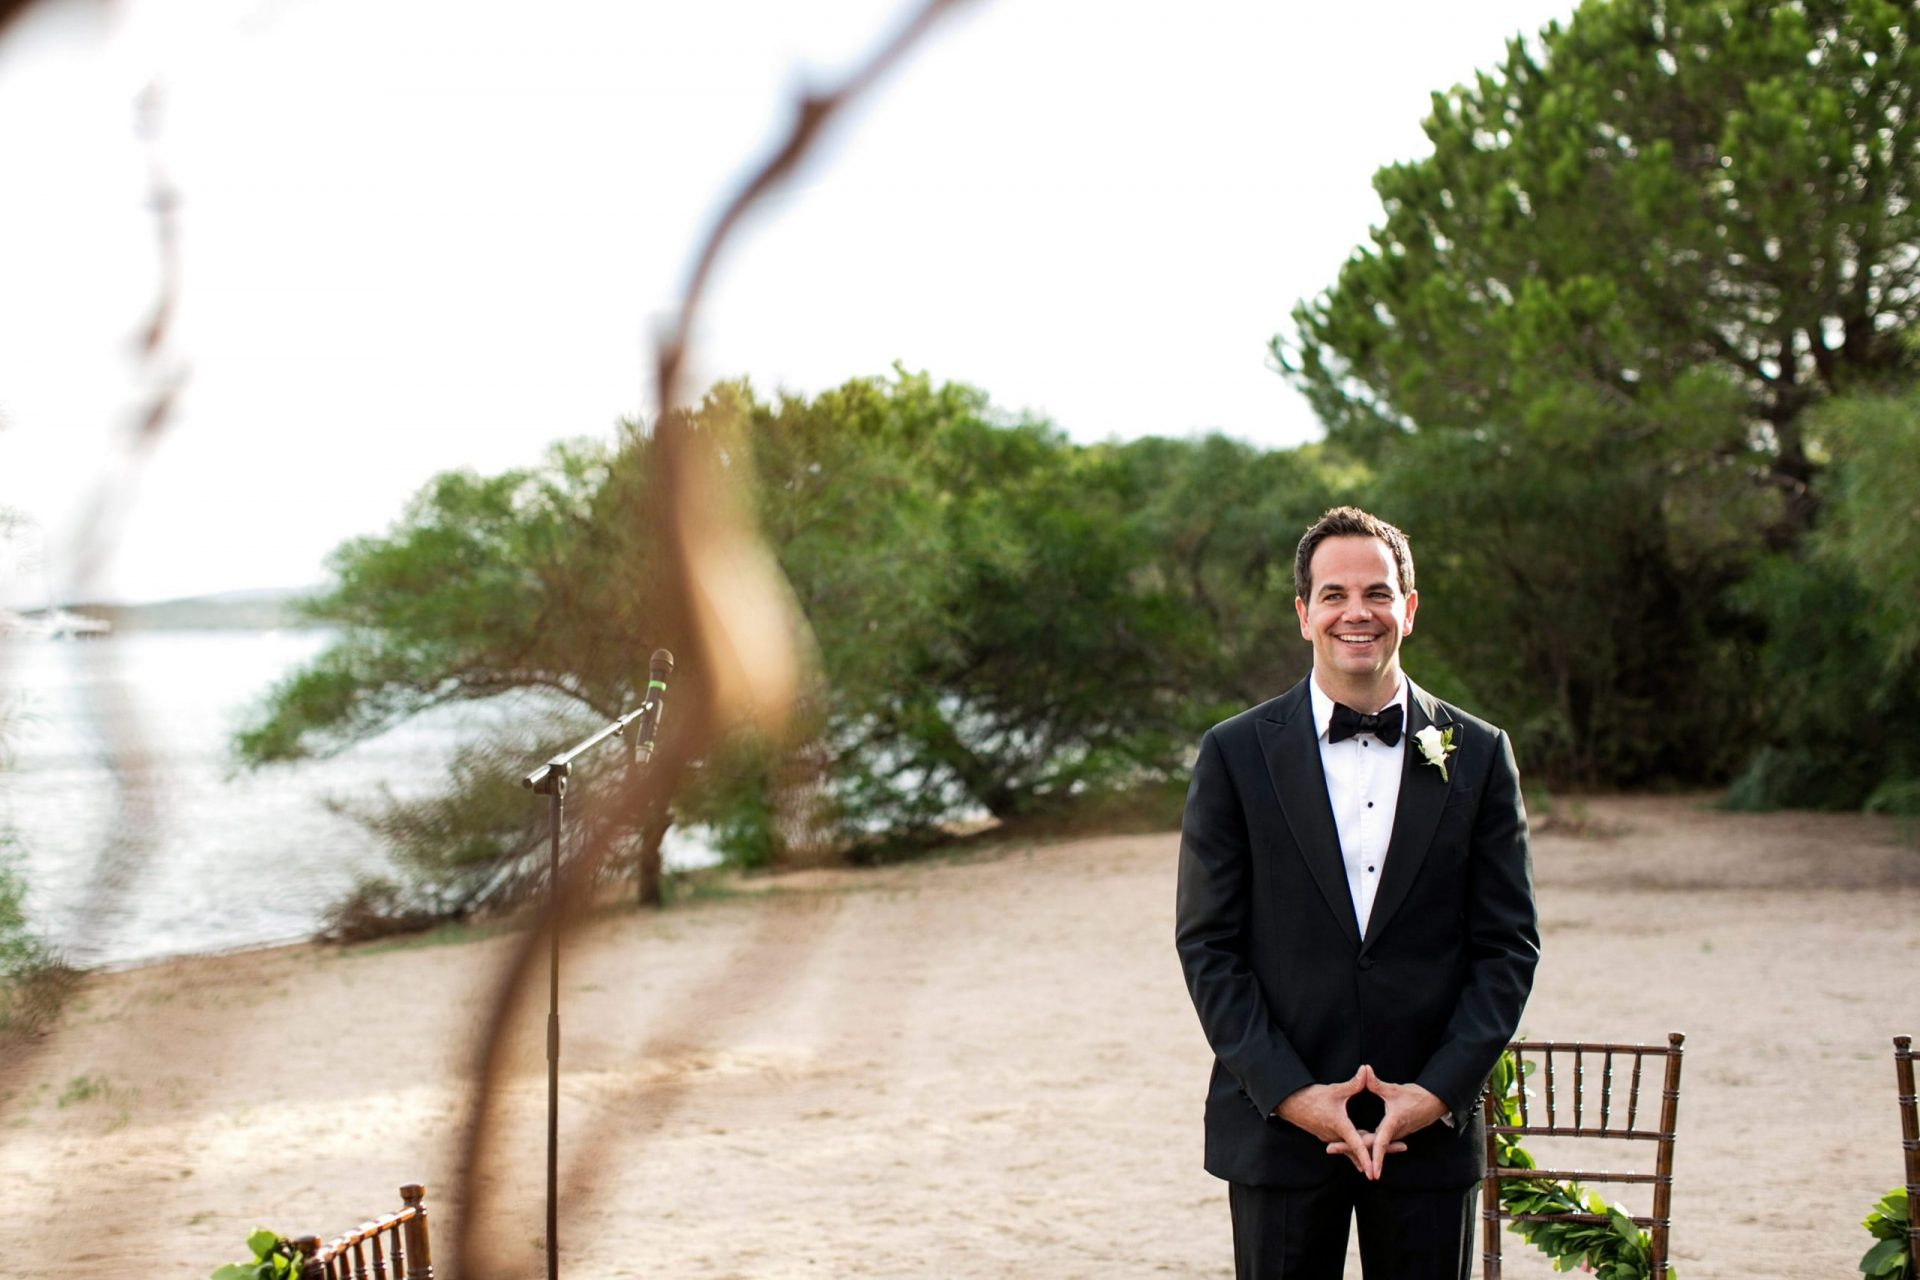 Lisa and Daniel, luxury wedding in Cala di Volpe, the groom